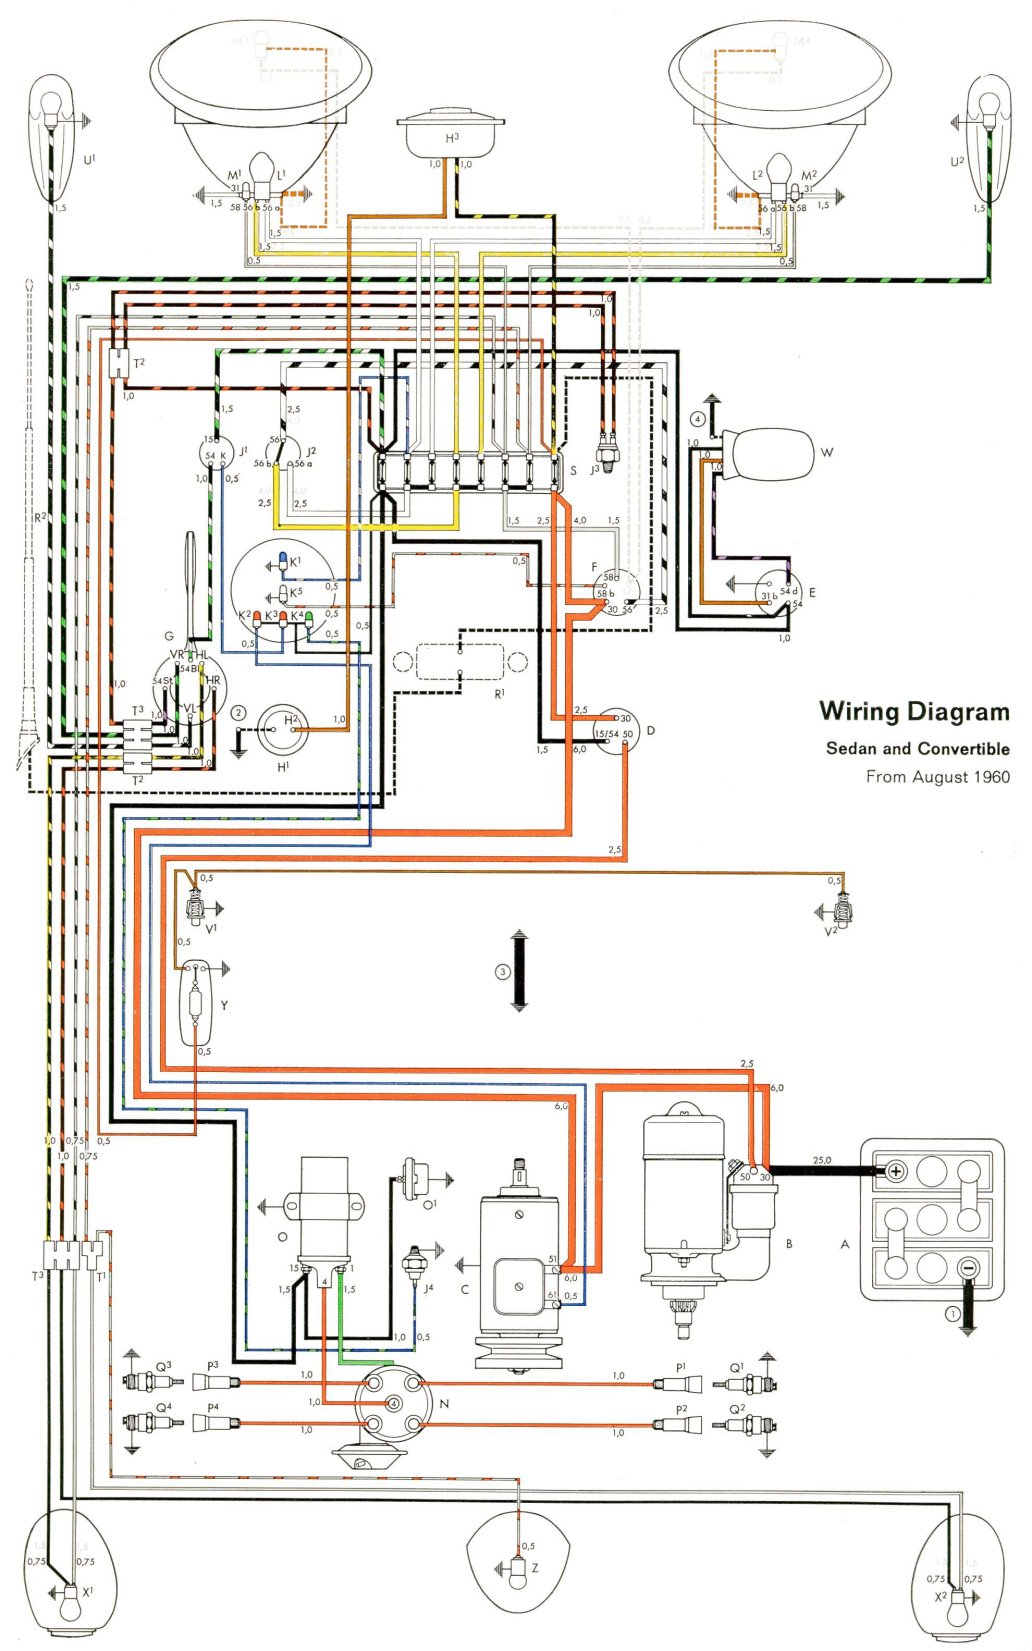 bug_61 1961 beetle wiring diagram thegoldenbug com VW Alternator Hook Up at virtualis.co